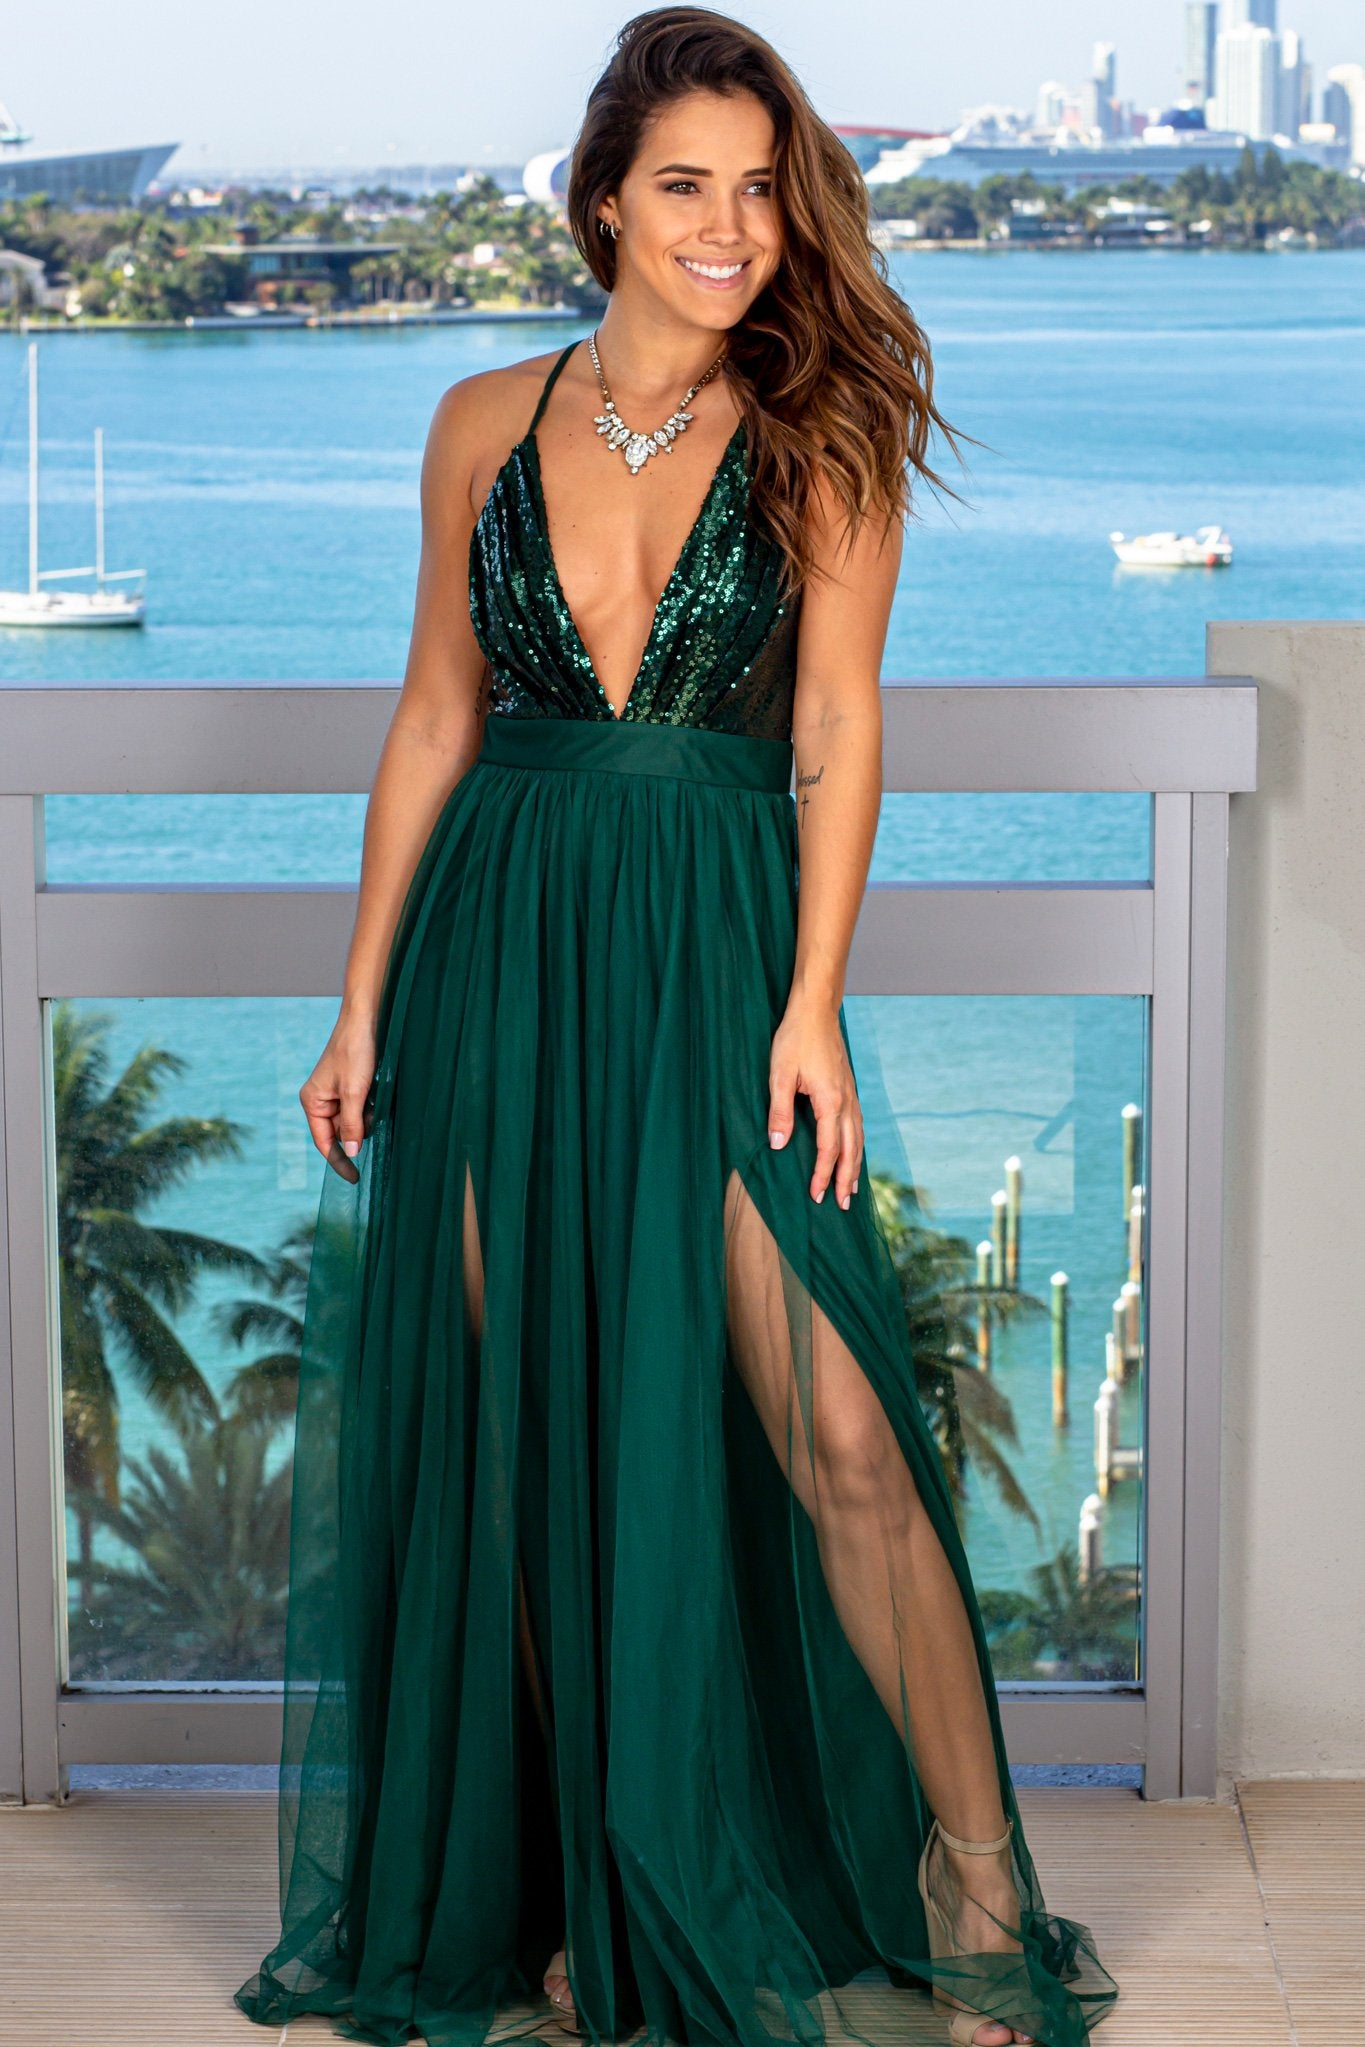 Hunter Green Tulle Maxi Dress with Sequin Top and Criss Cross Back